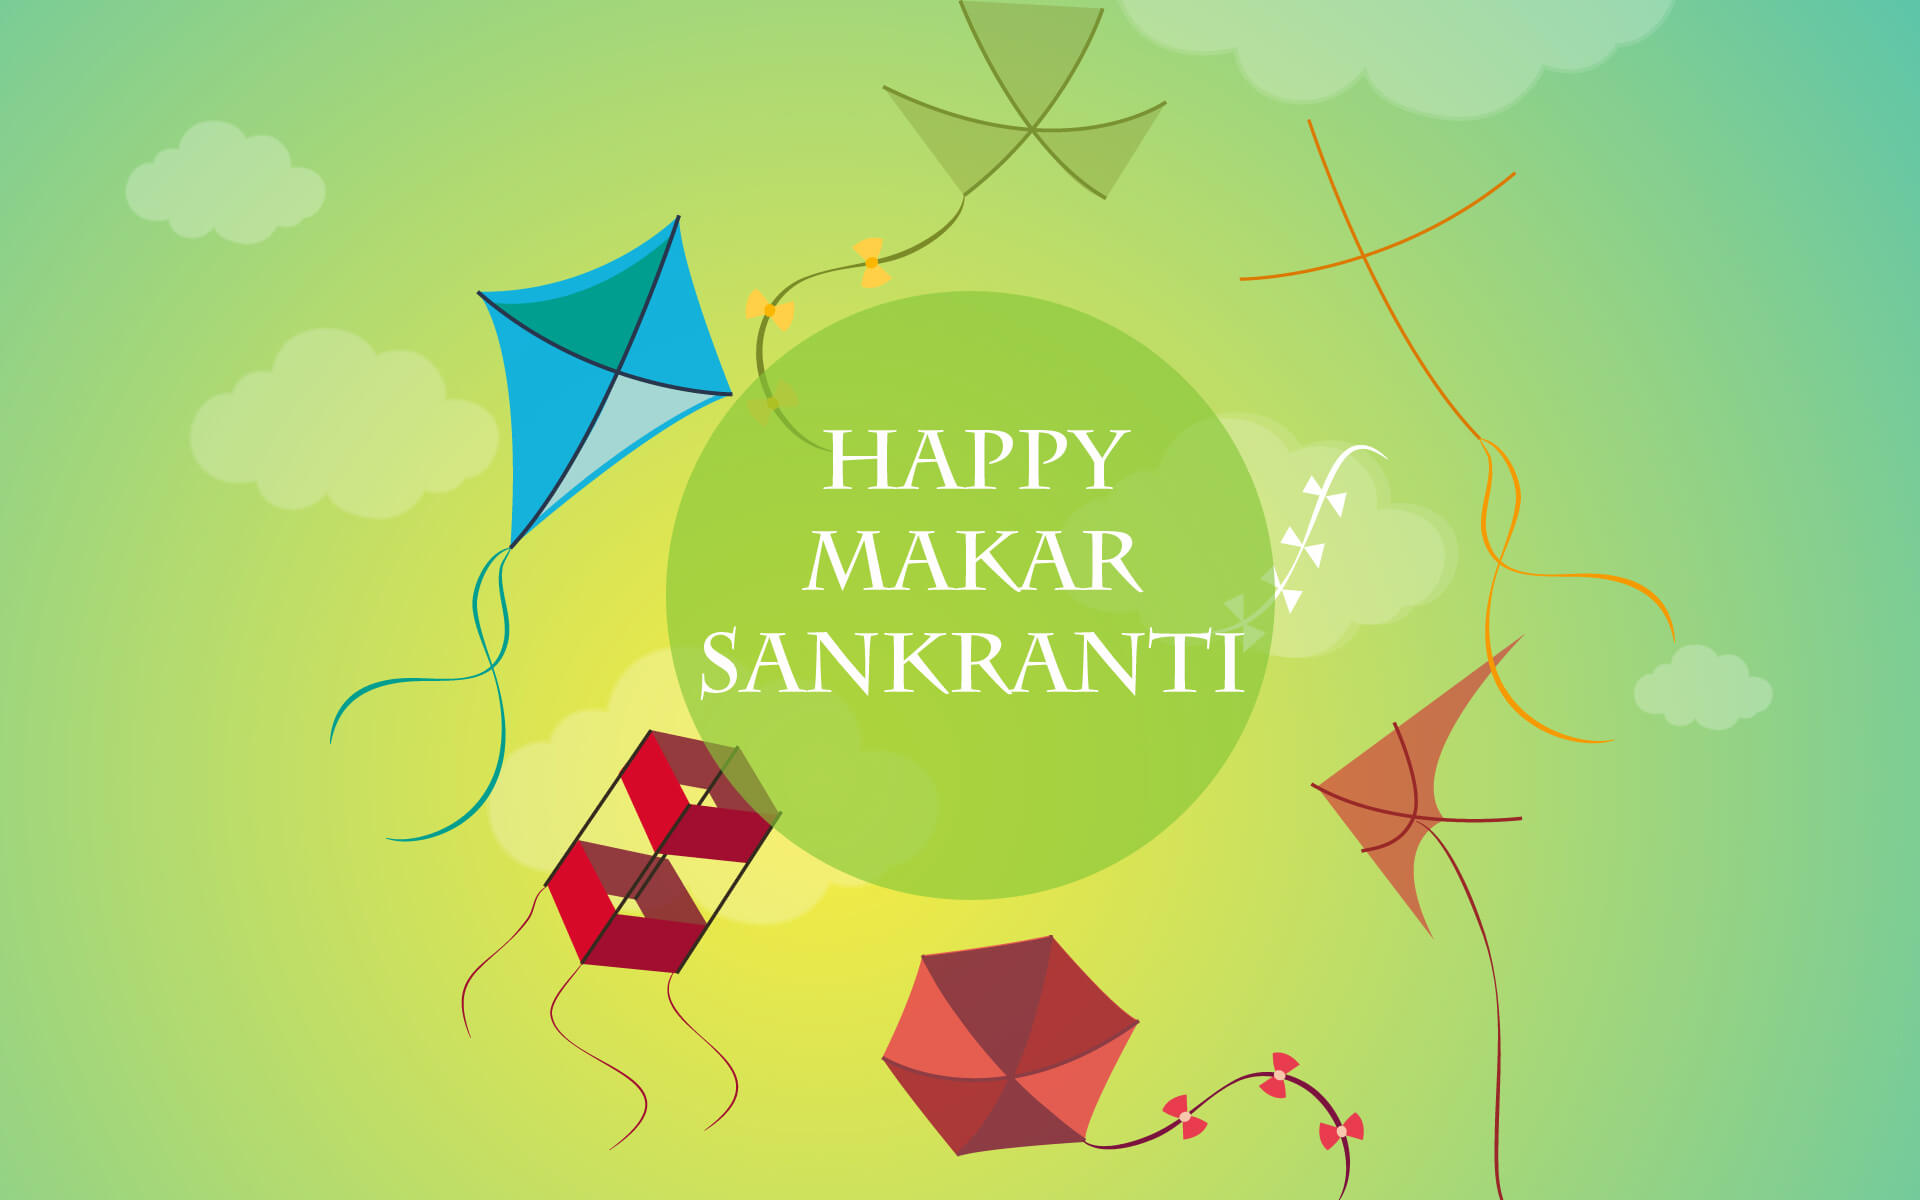 makar sankranti images in hindi